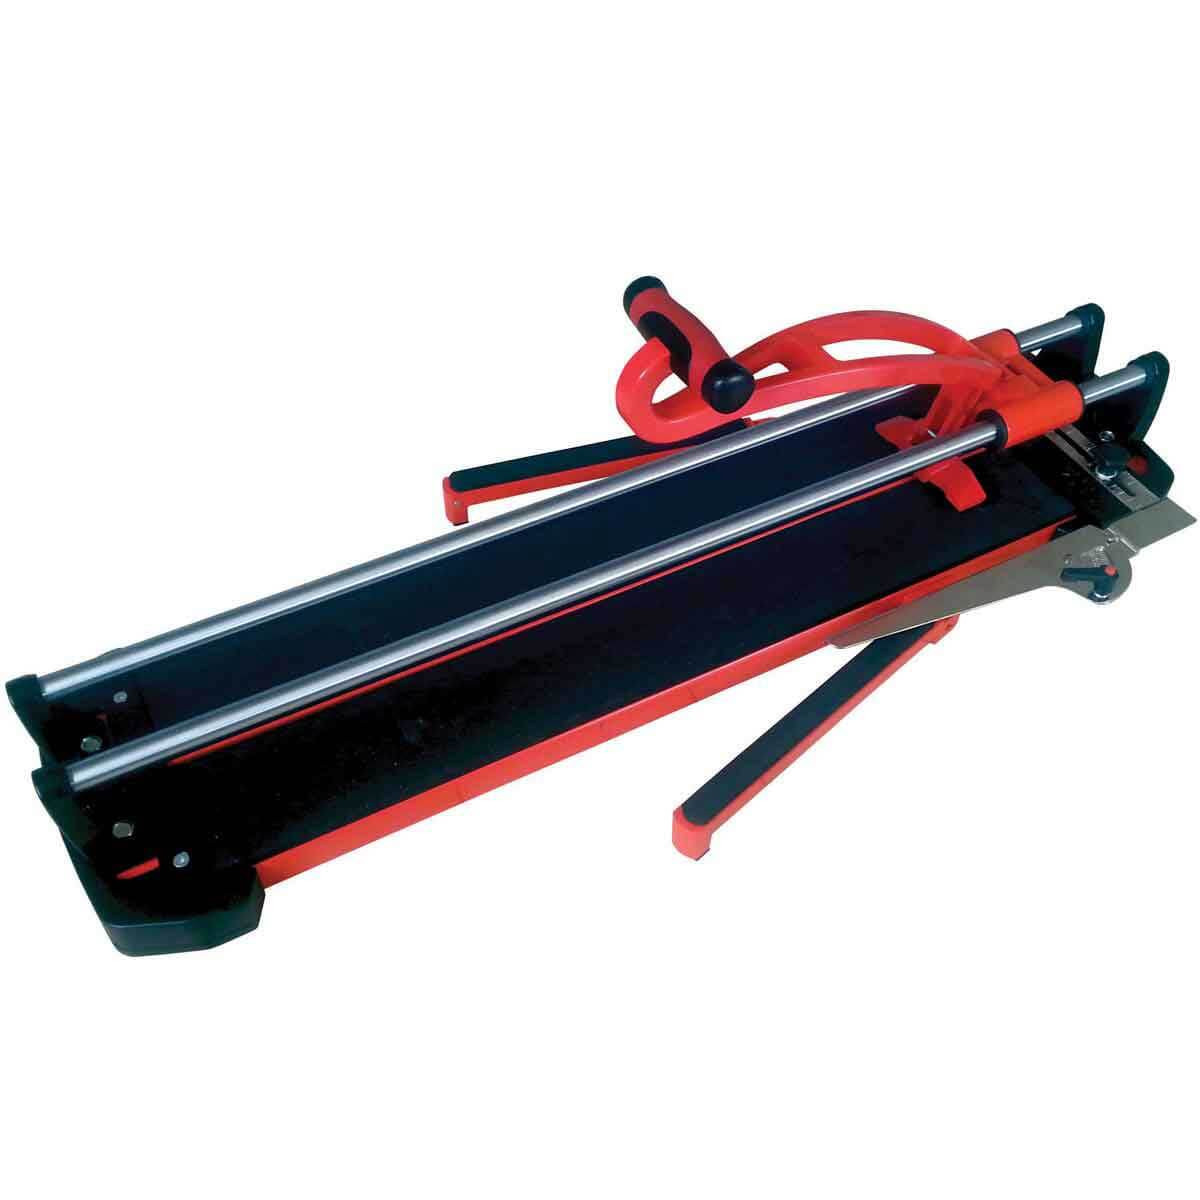 Tomecanic tile cutter tile design ideas tomecanic wishbone professional tile cutter contractors direct dailygadgetfo Gallery